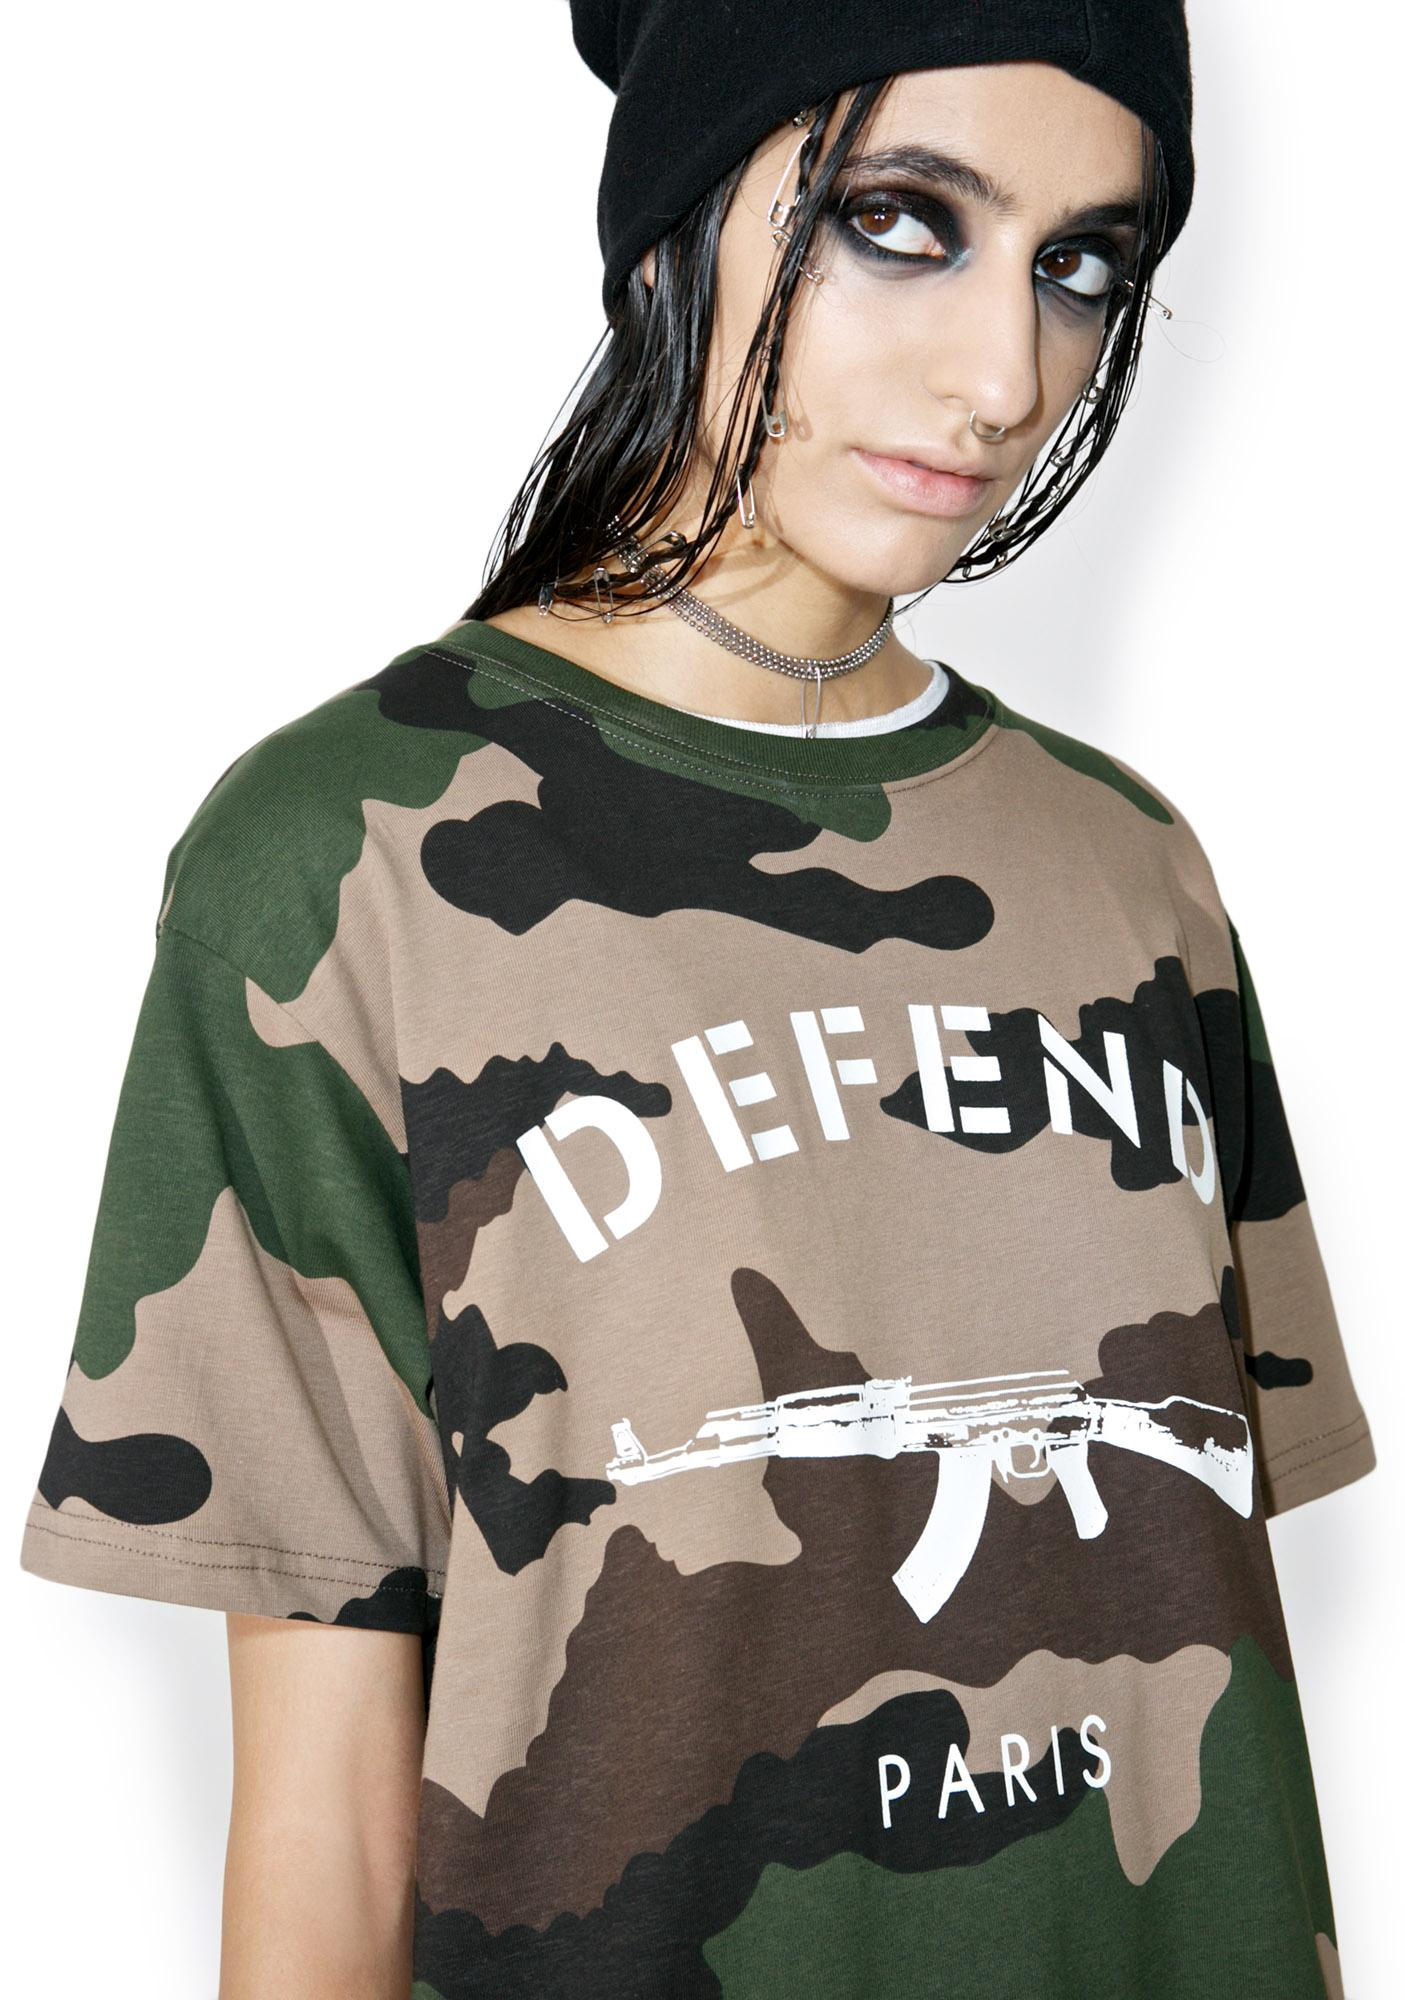 Defend Paris Yosef Paris Tee